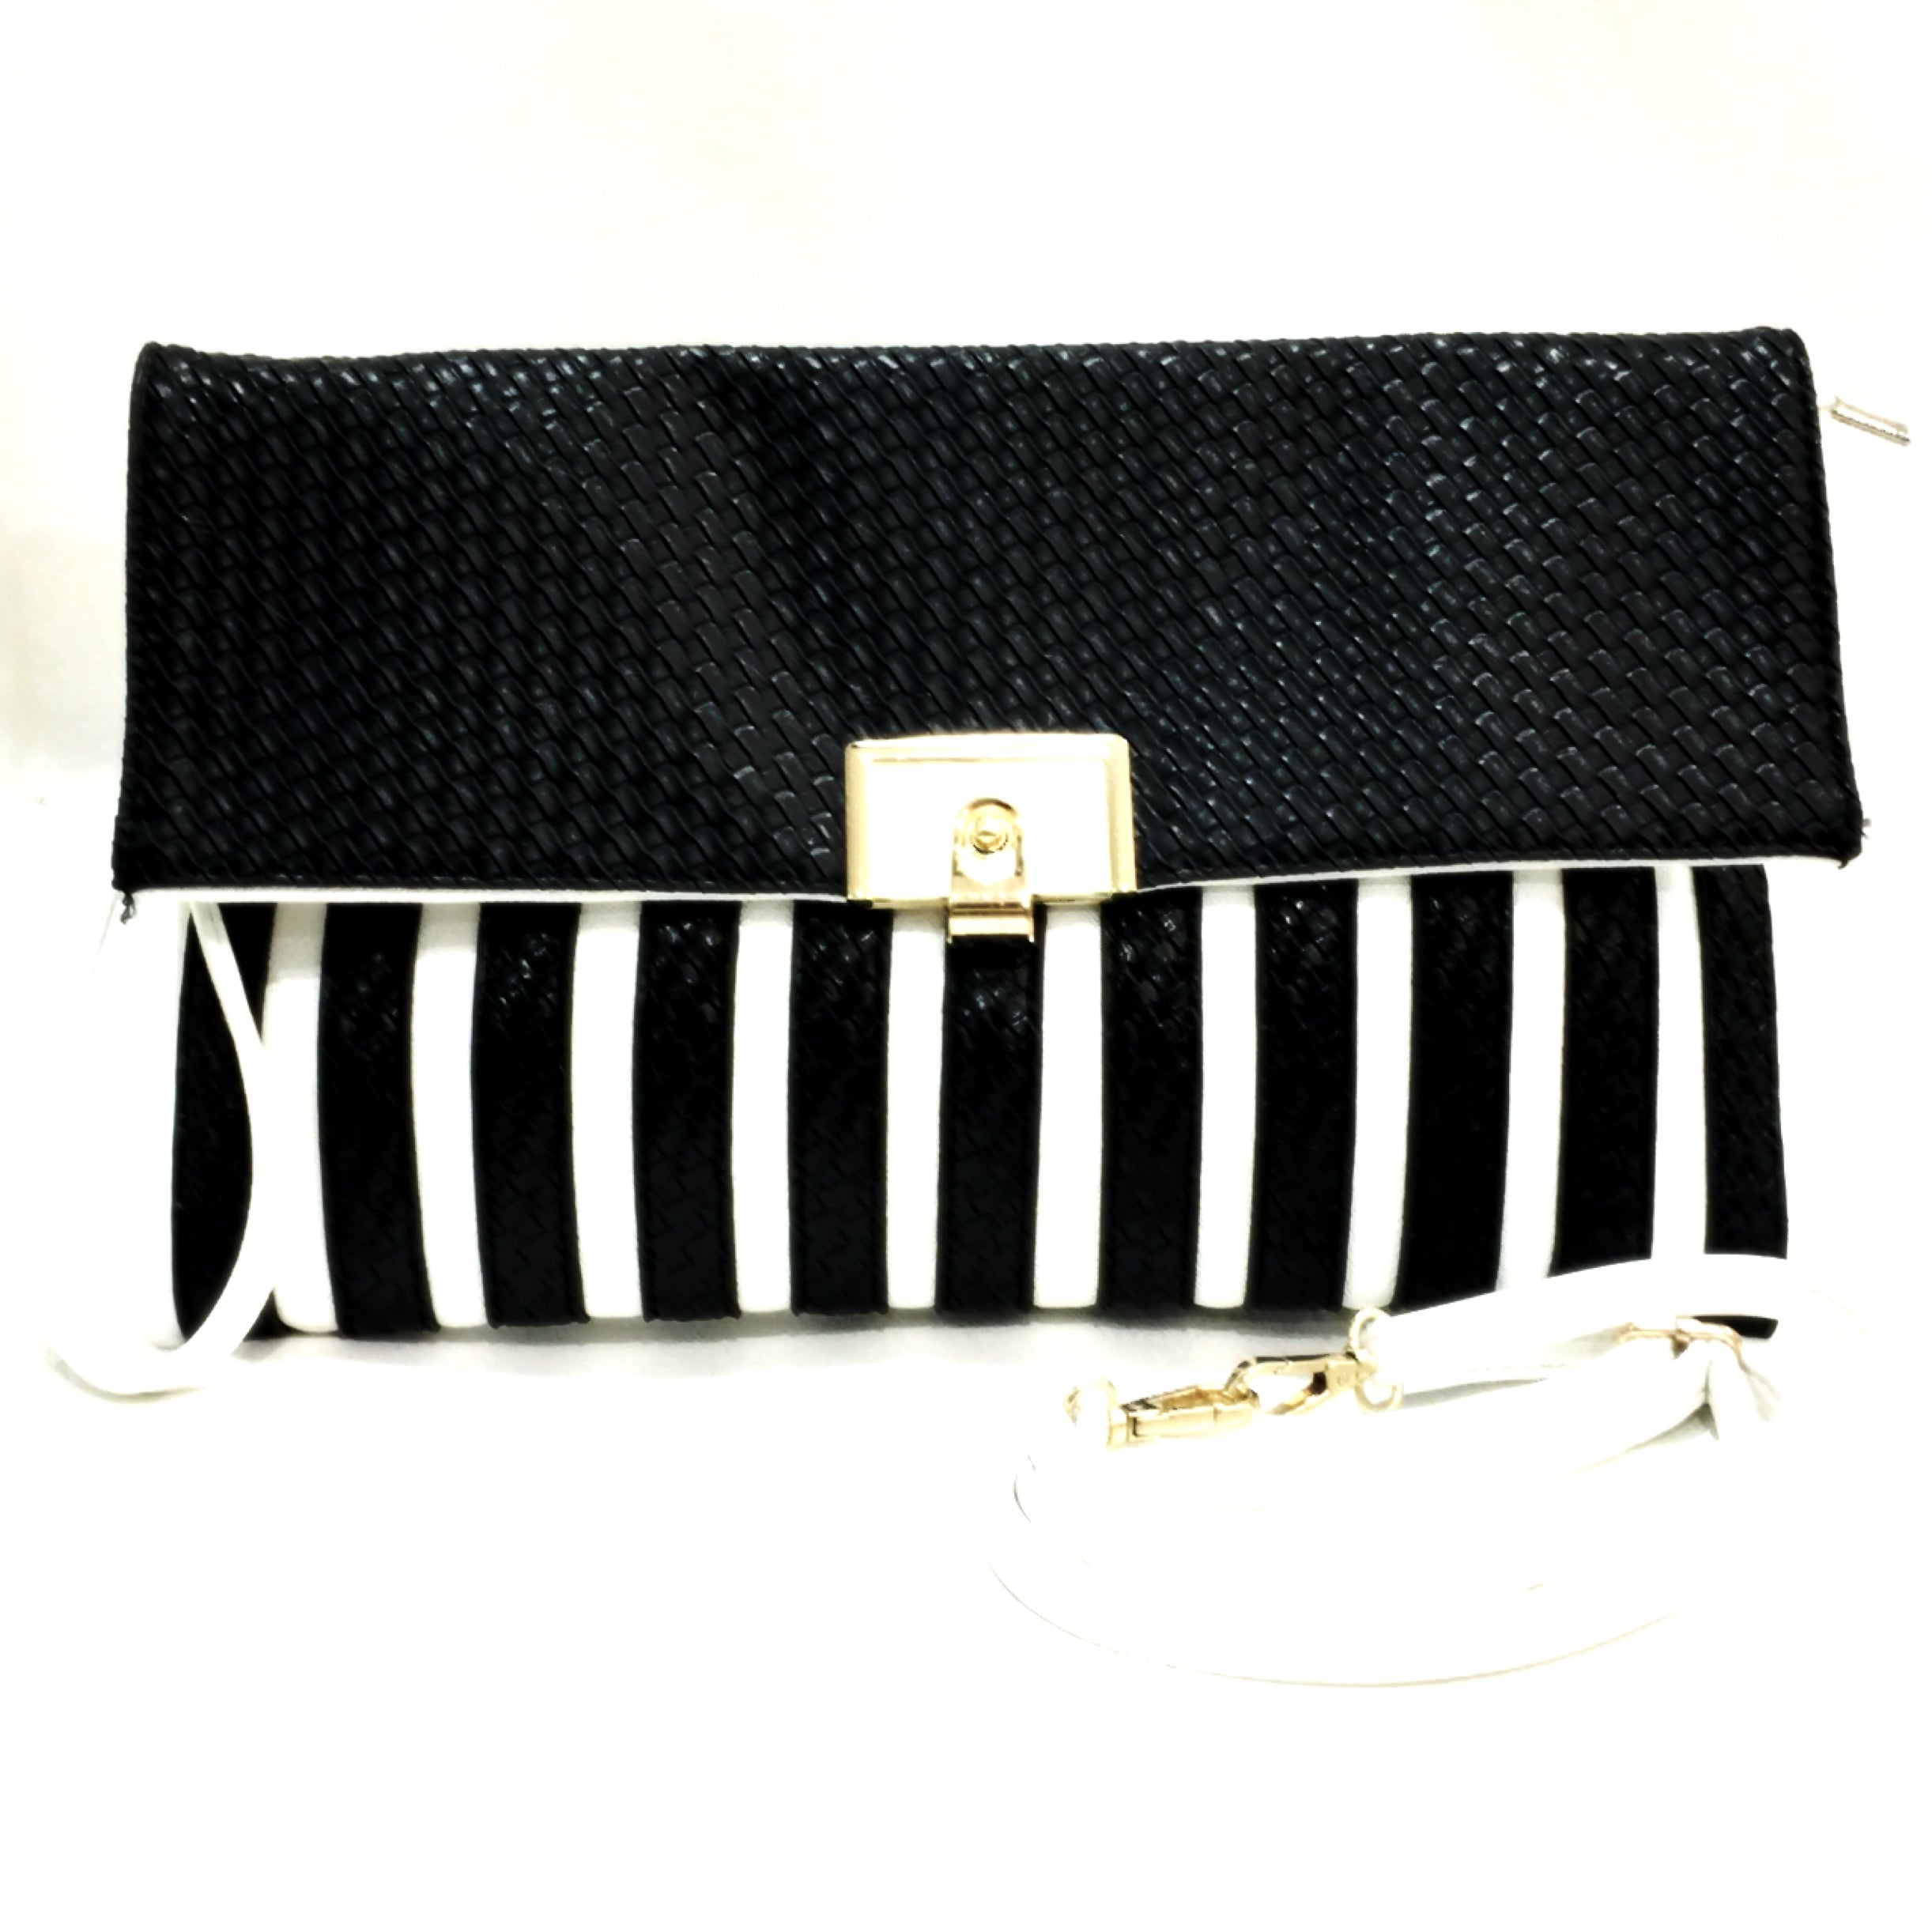 River Island Black & White Striped Clutch Bag